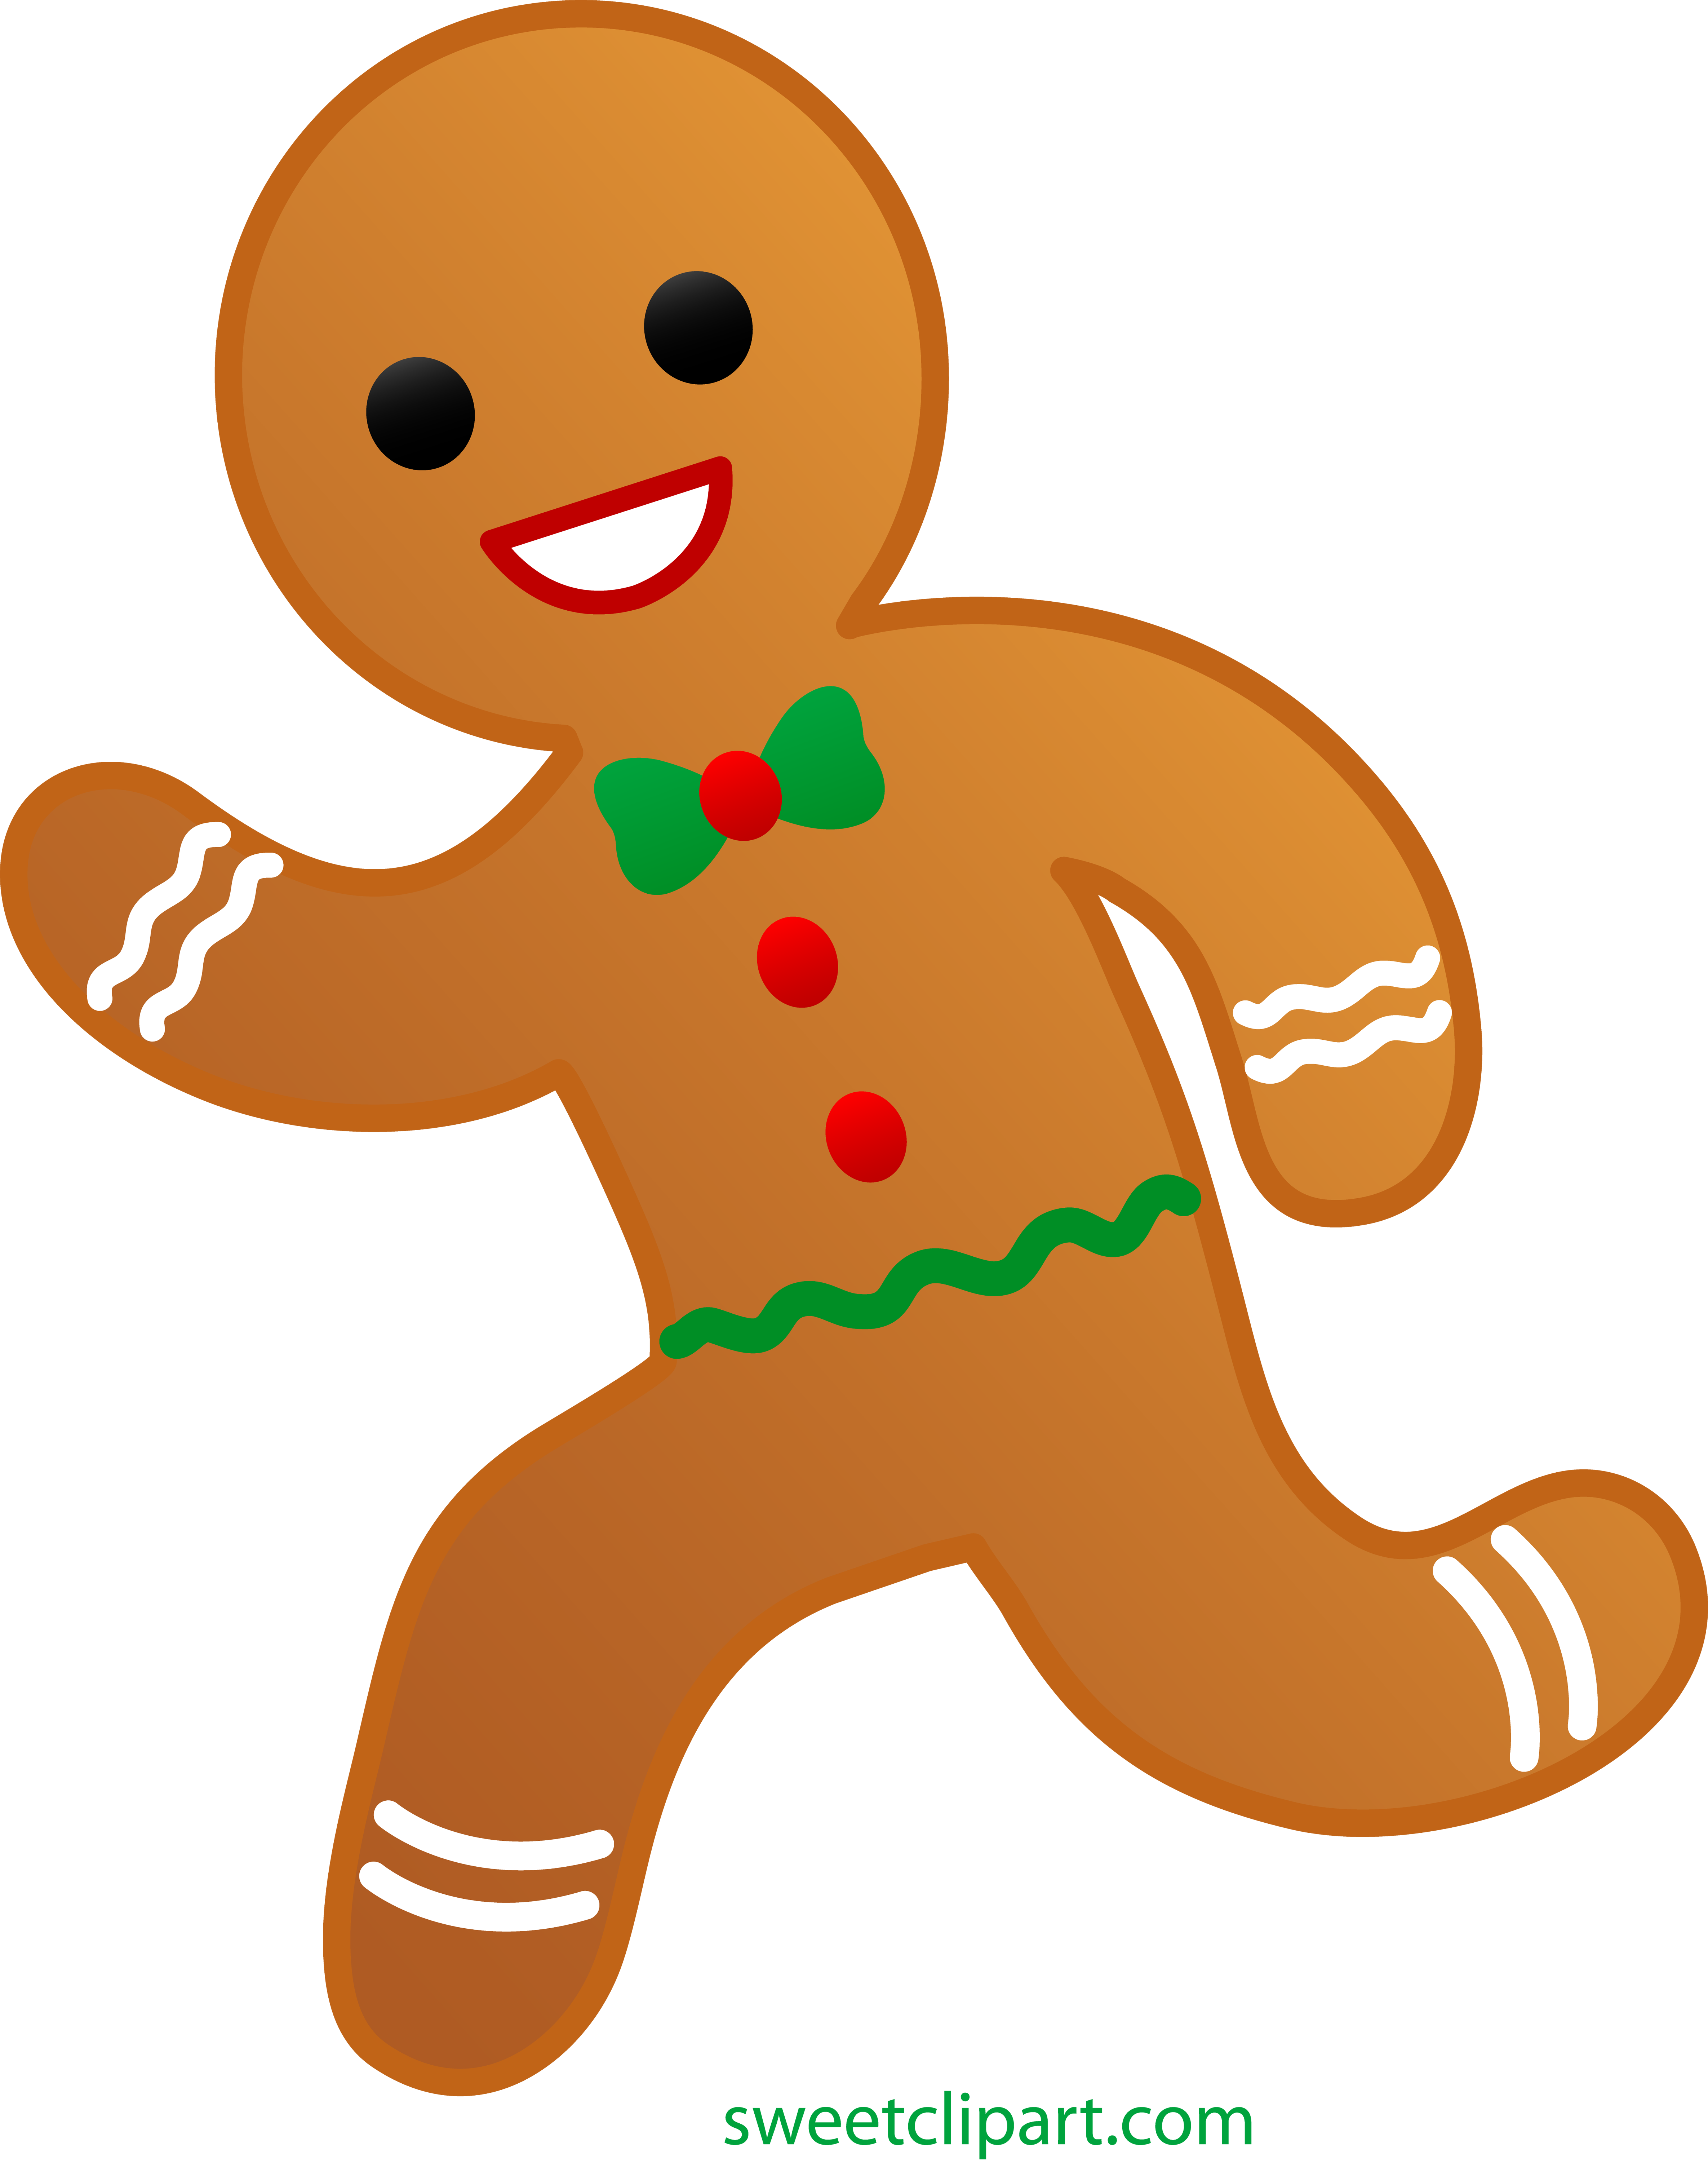 Gingerbread cookie clipart vector black and white download Gingerbread Man Running Away - Free Clip Art vector black and white download